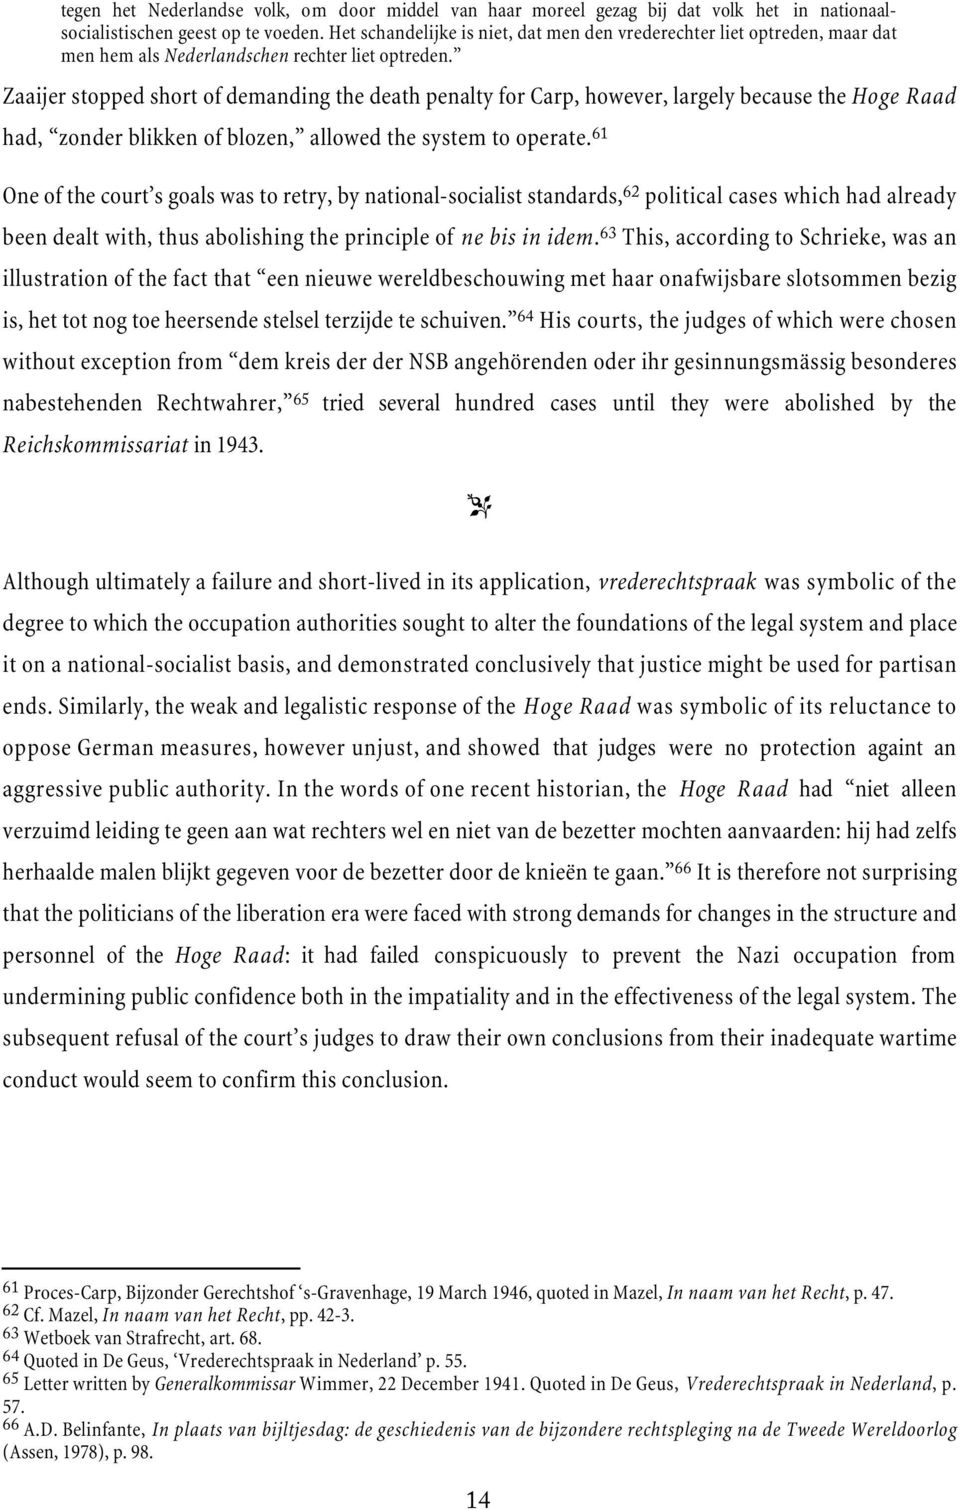 Zaaijer stopped short of demanding the death penalty for Carp, however, largely because the Hoge Raad had, zonder blikken of blozen, allowed the system to operate.